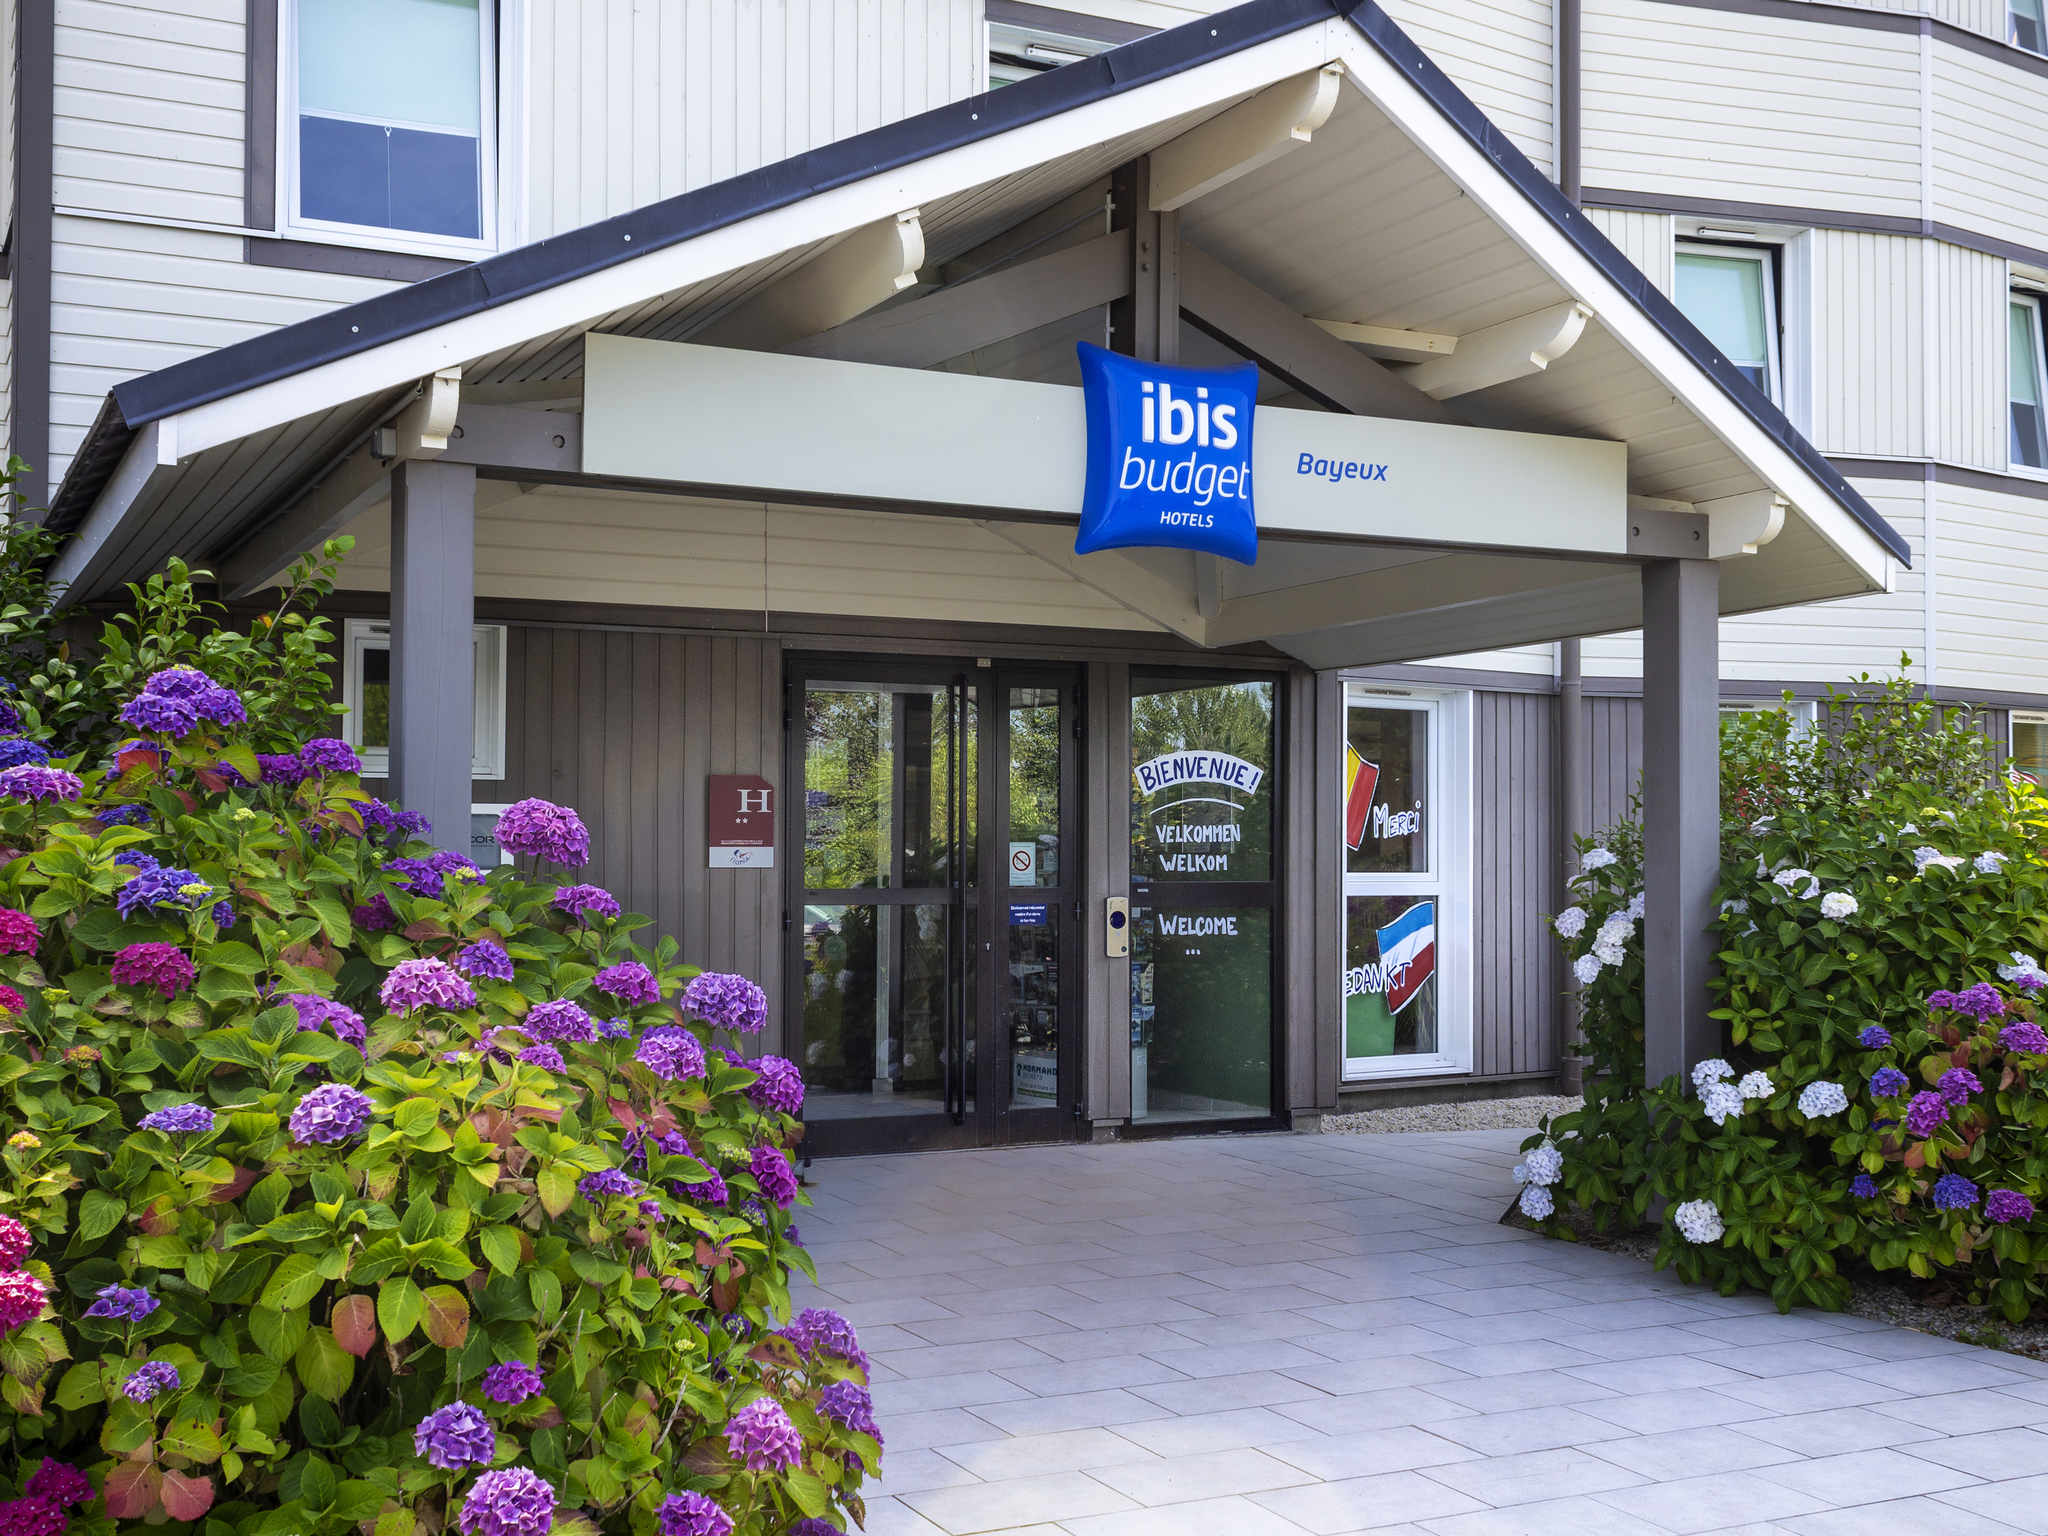 Hotel in nonant ibis budget bayeux for Hotels ibis france